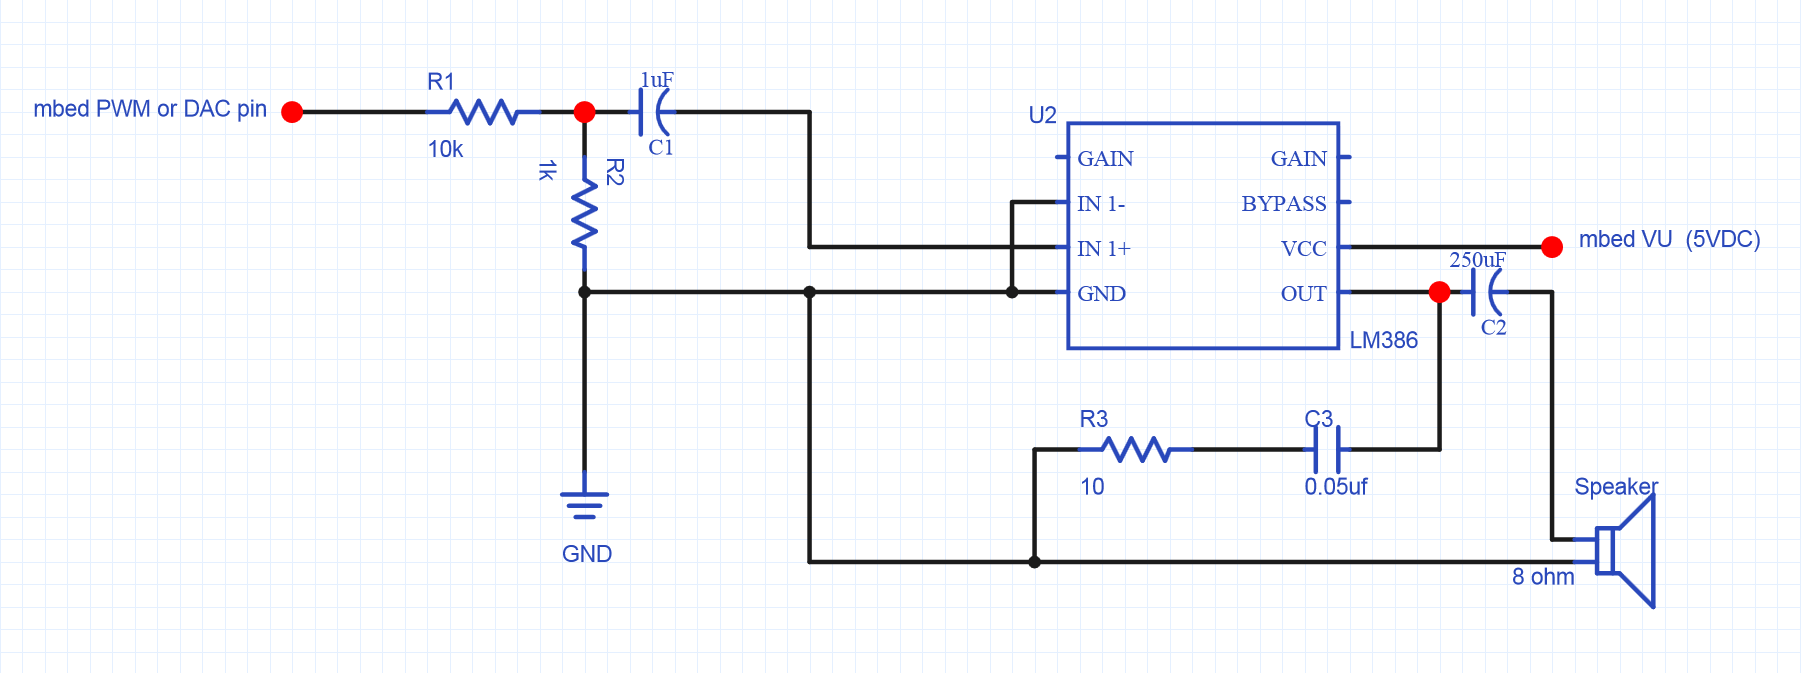 Using A Speaker For Audio Output Mbed Lowpower Amplifier With Digital Volume Control Amp Circuit Diagram Lm386 Small 8ohm 5w Smaller Value R1 Can Be Used To Increase The